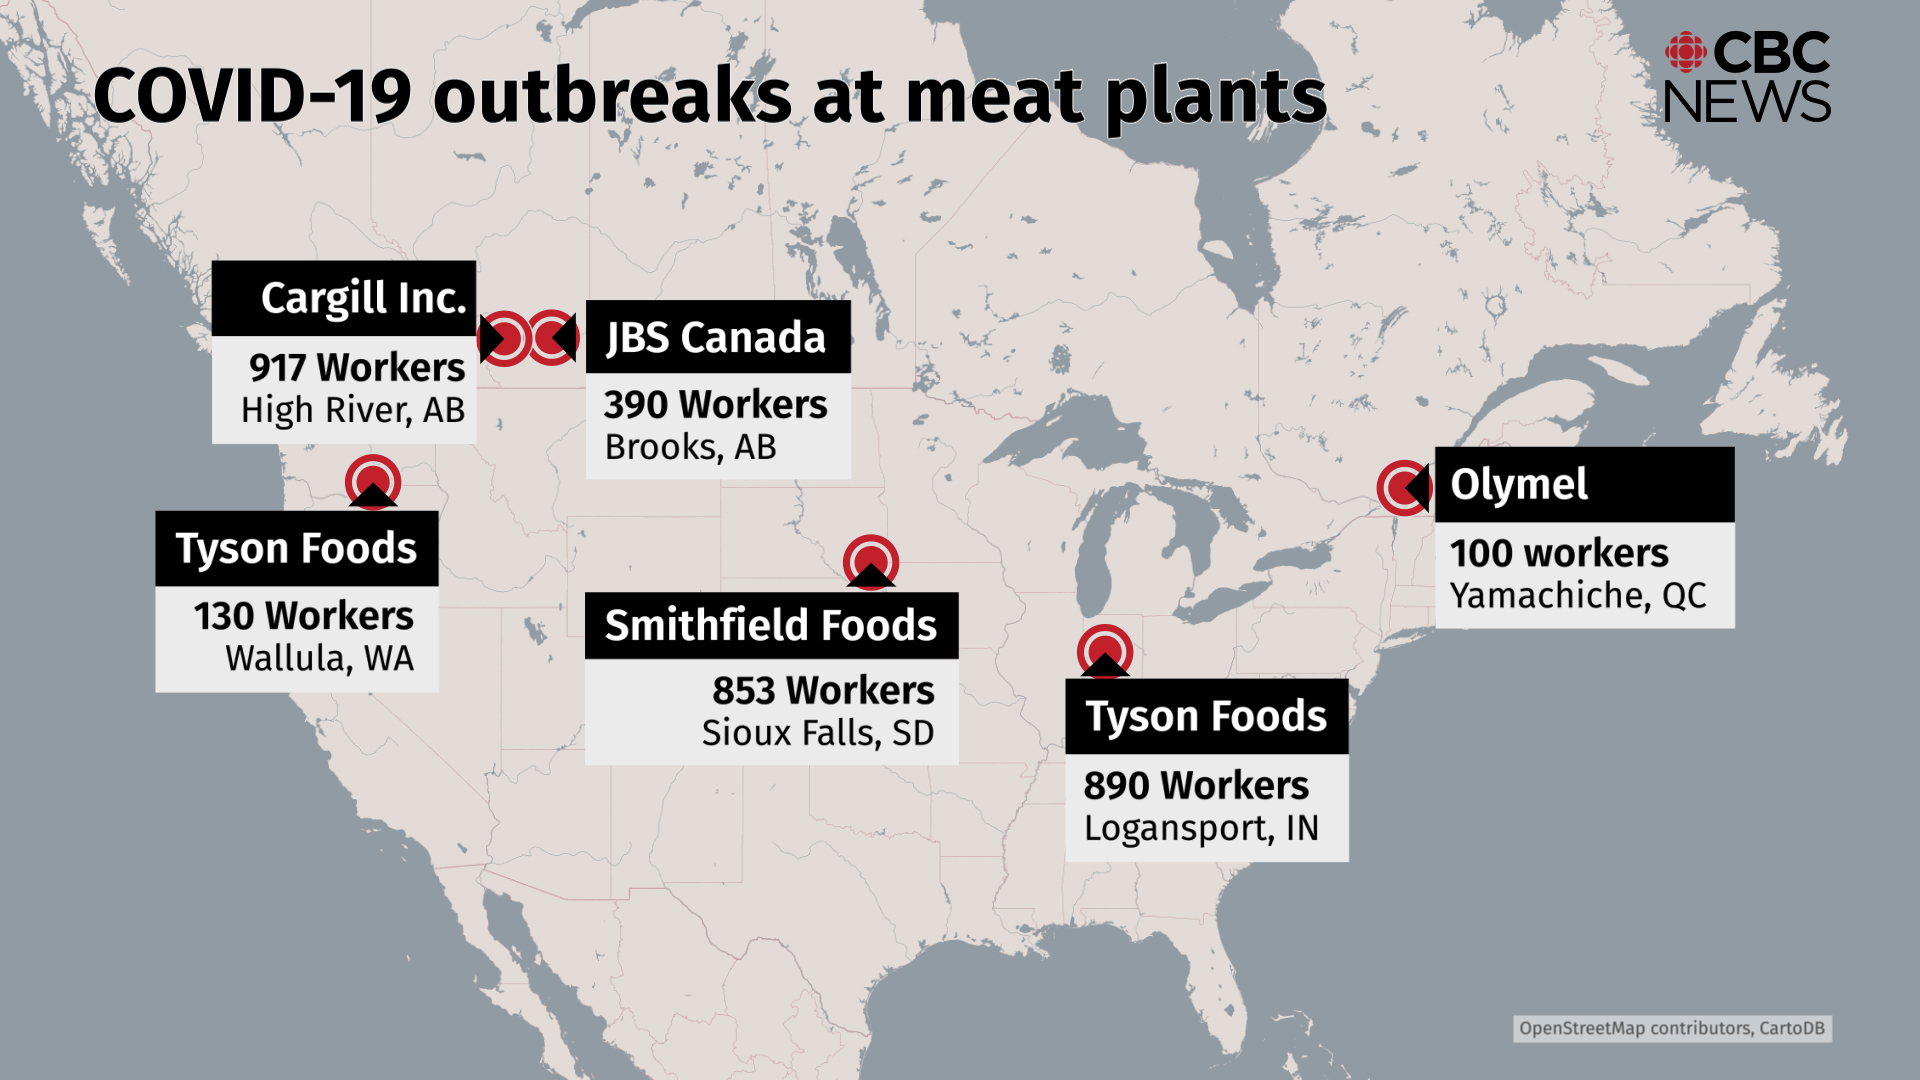 These are some of the largest outbreaks of COVID-19 across North America as of May 1, 2020. (CBC)